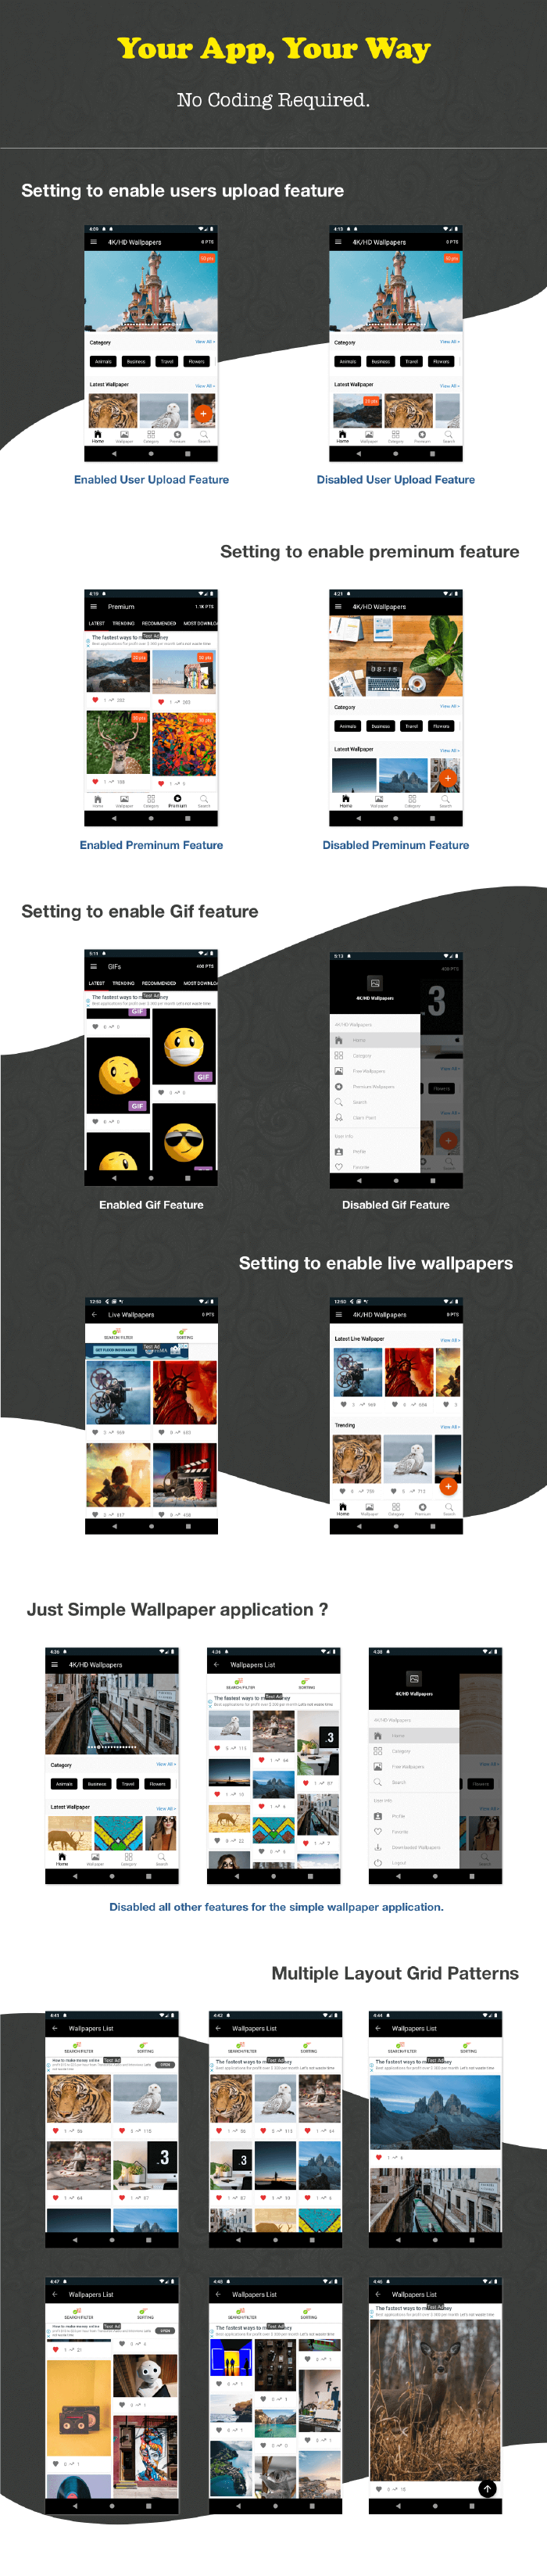 4K/HD Wallpaper Android App ( Auto Shuffle + Gif + Live + Admob + Firebase Noti + PHP Backend) 2.8 - 4